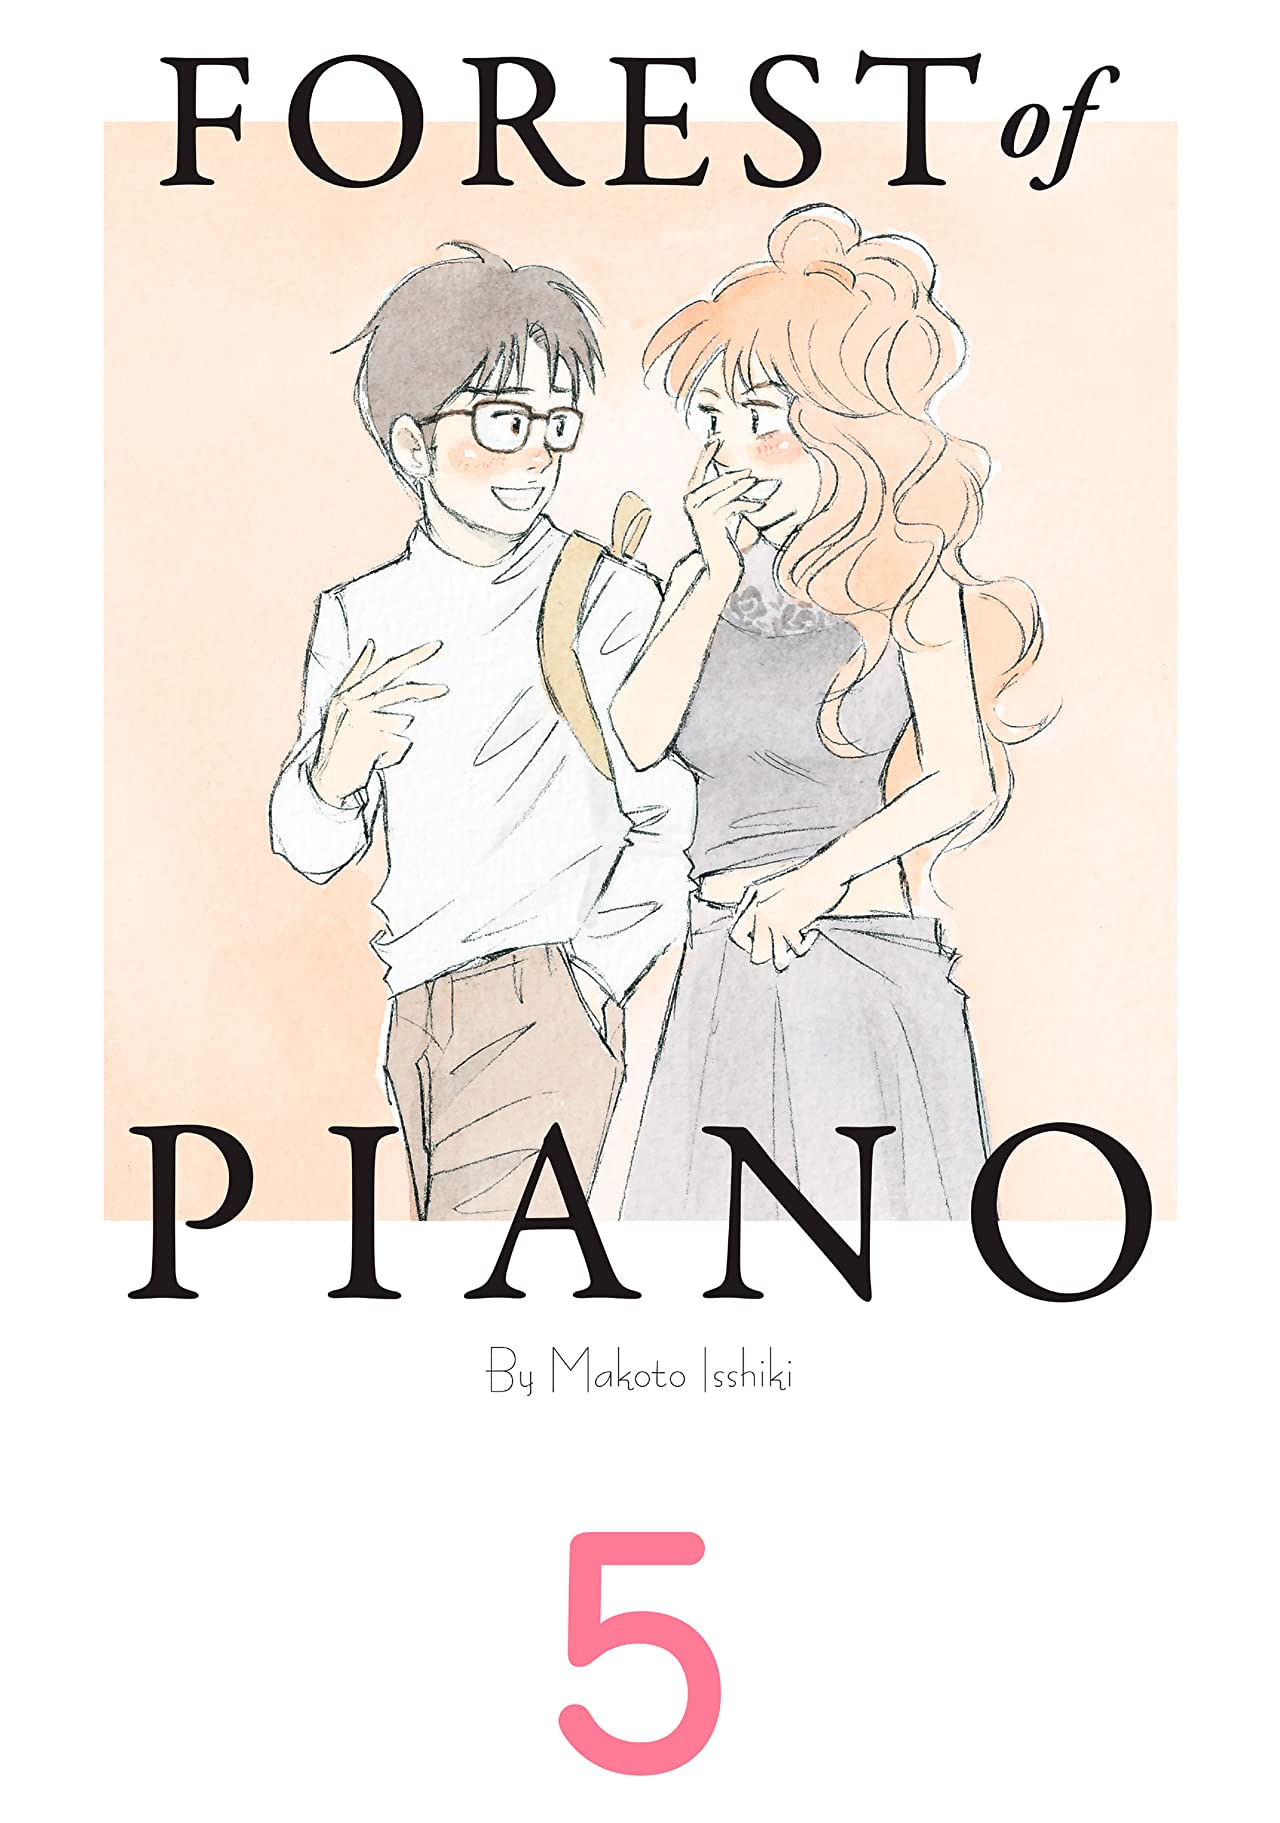 Forest of Piano Vol. 5